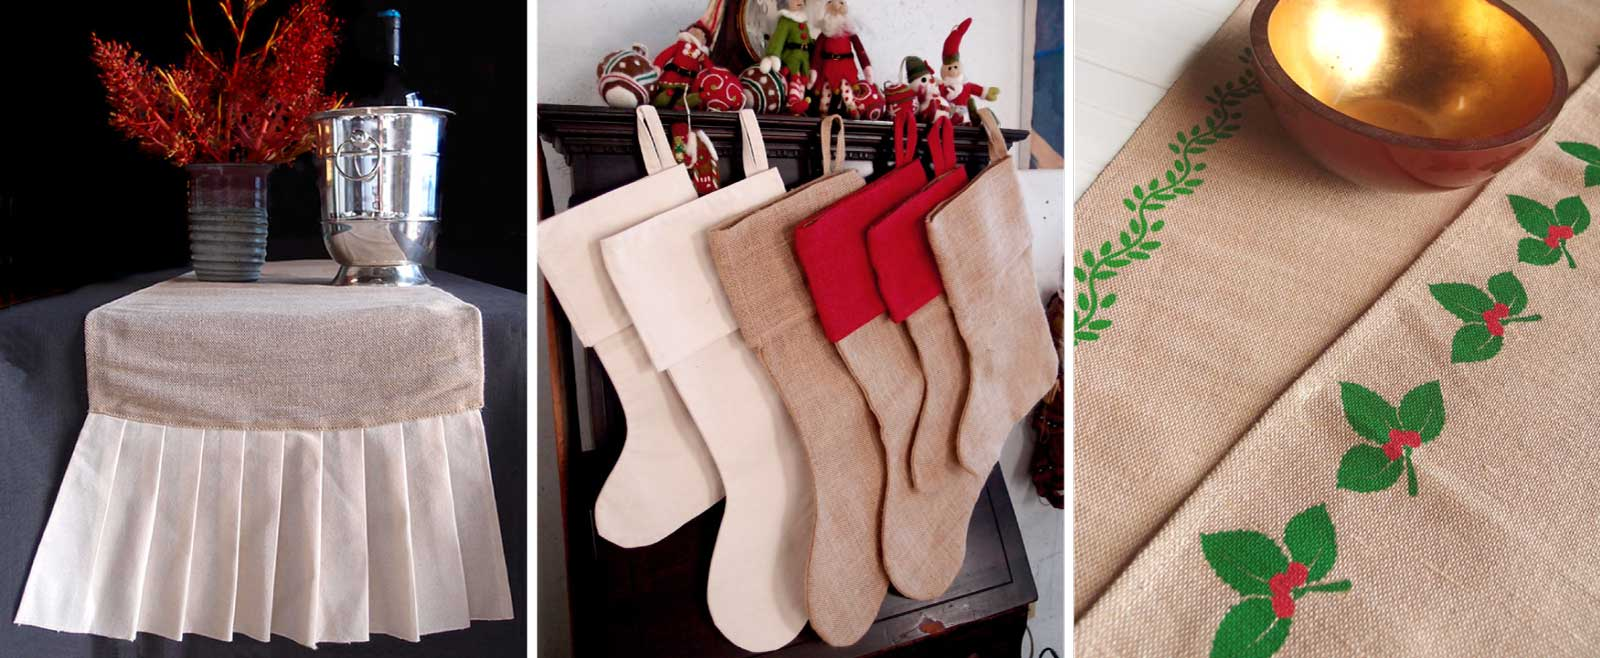 Holiday Christmas Rustic Decor, Jute Runners, Natural Burlap Stockings